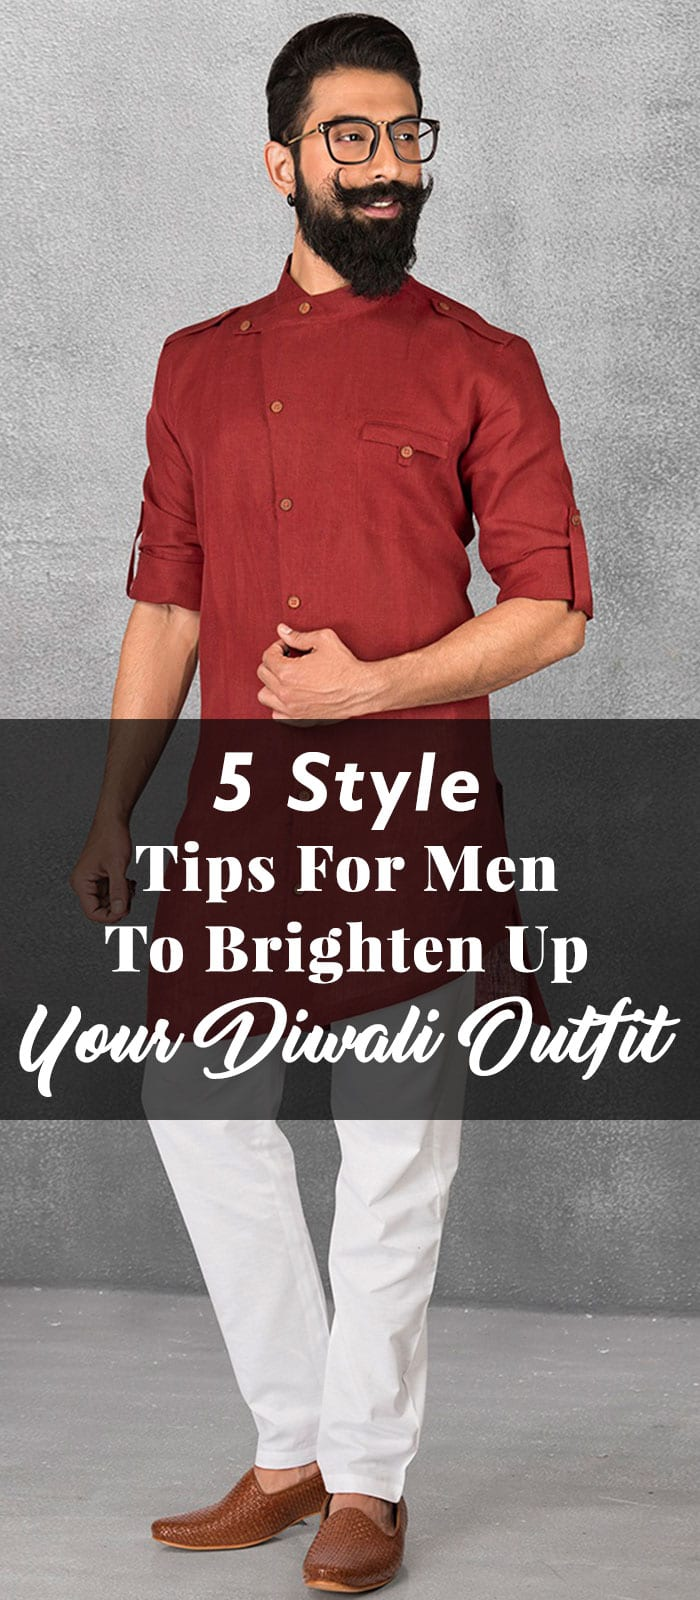 5 Style Tips For Men To Brighten Up Your Diwali Outfit